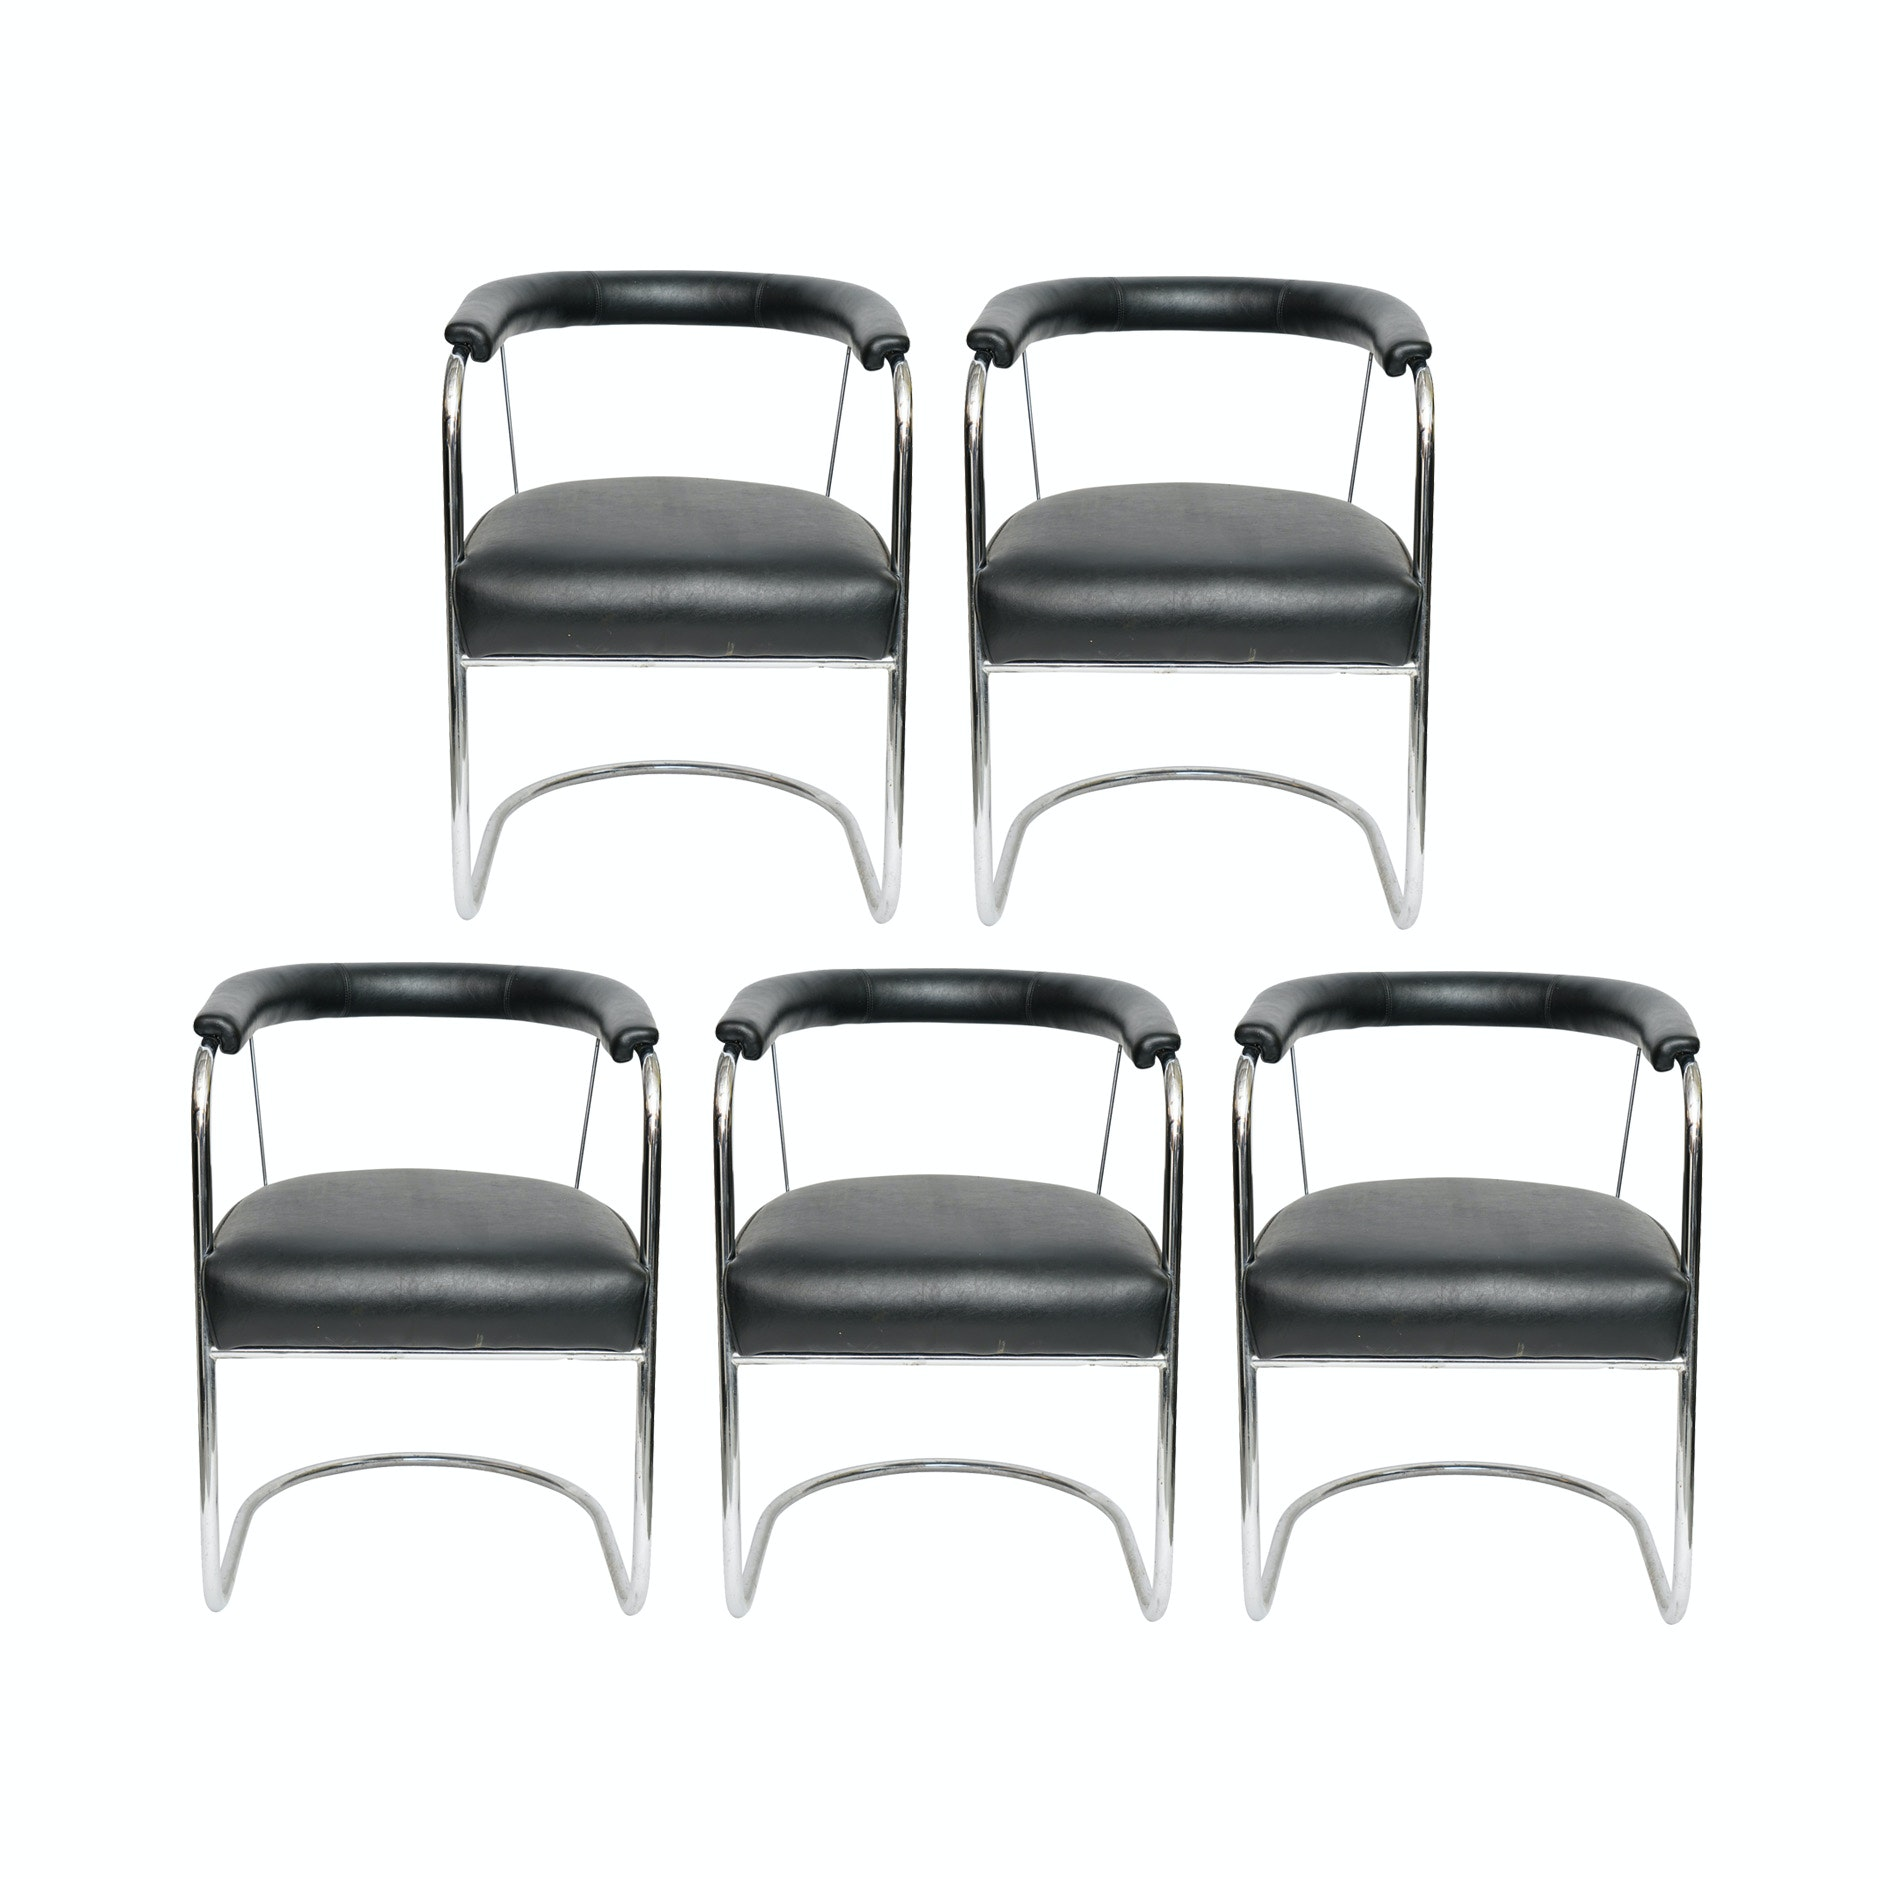 Set of Five 'SP4' Chromed Metal Armchairs, after O.P. Bernard for P.E.L.